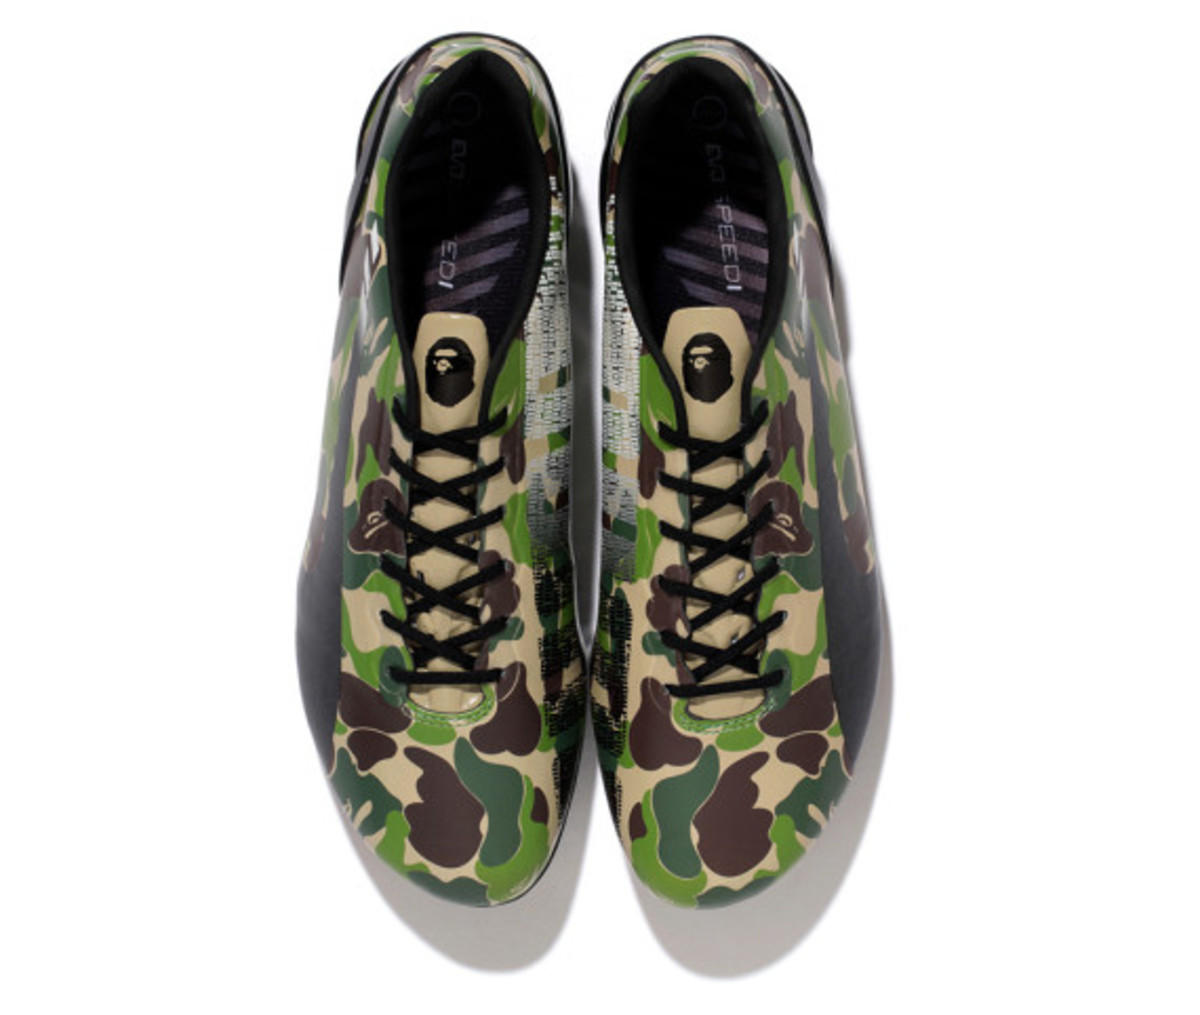 a-bathing-ape-puma-bape-fc-capsule-collection-03